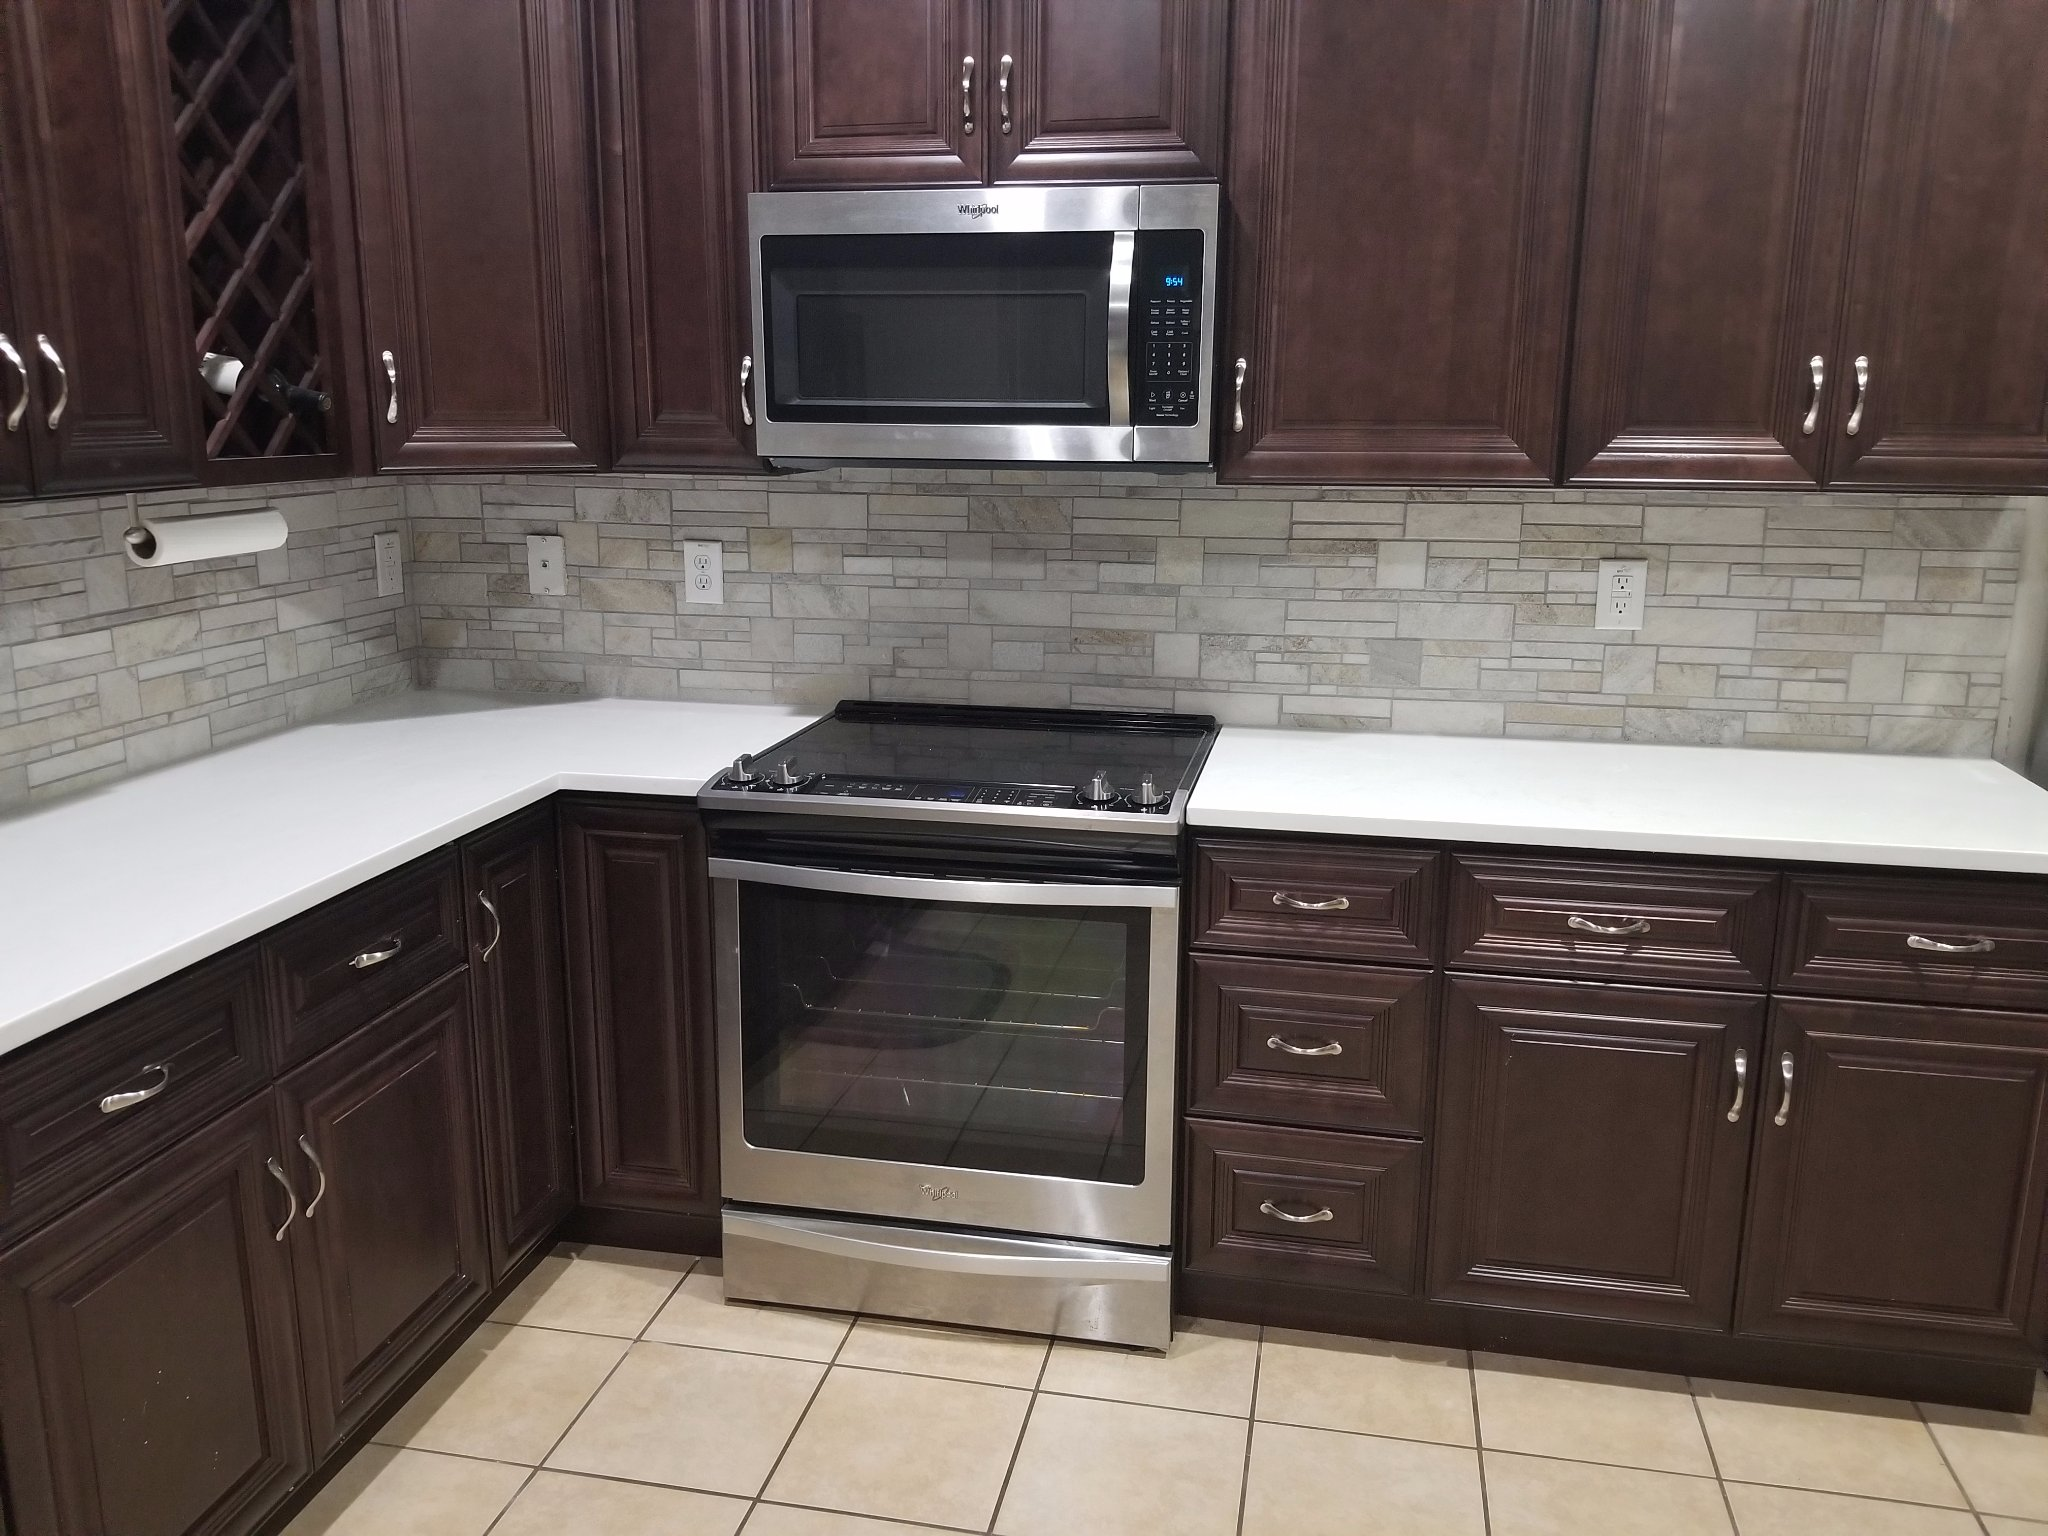 Dba martinez tile fort worth tx reviews dailygadgetfo Image collections